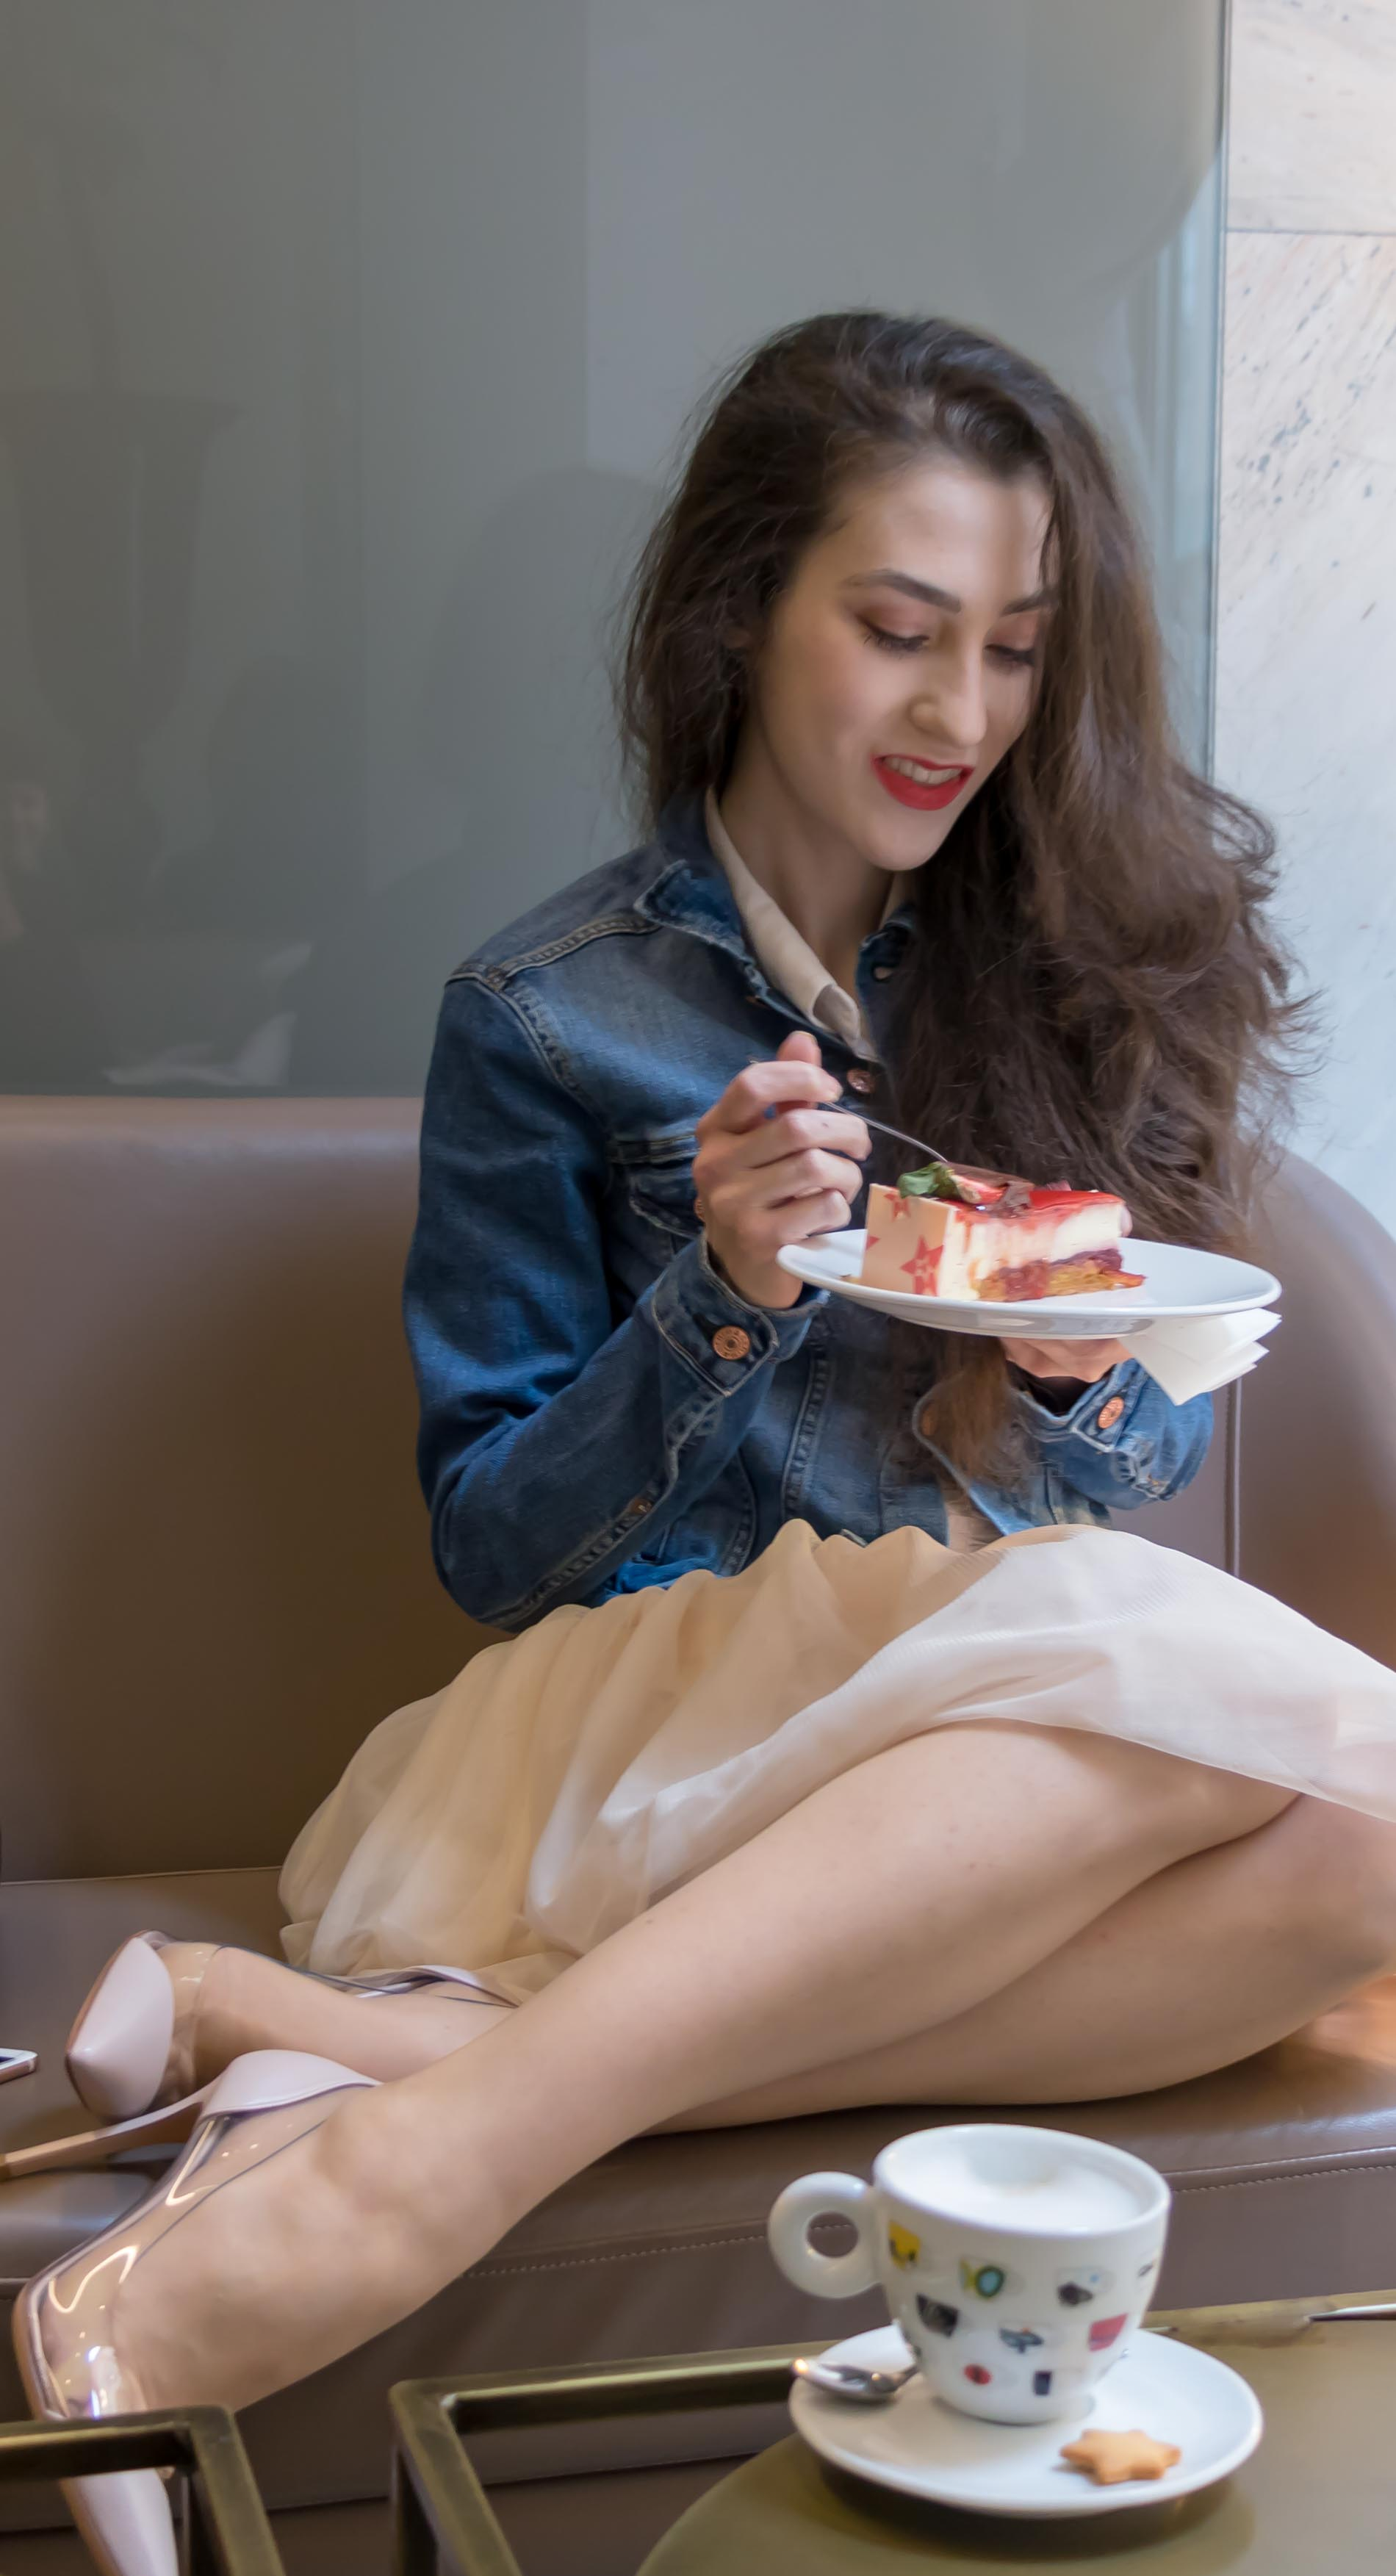 Fashion Blogger Veronika Lipar of Brunette from Wall Street wearing blush Gianvito Rossi Plexi 100 leather and PVC pump shoes, blush tulle skirt from Zara, blue denim jacket from H&M while eating cake